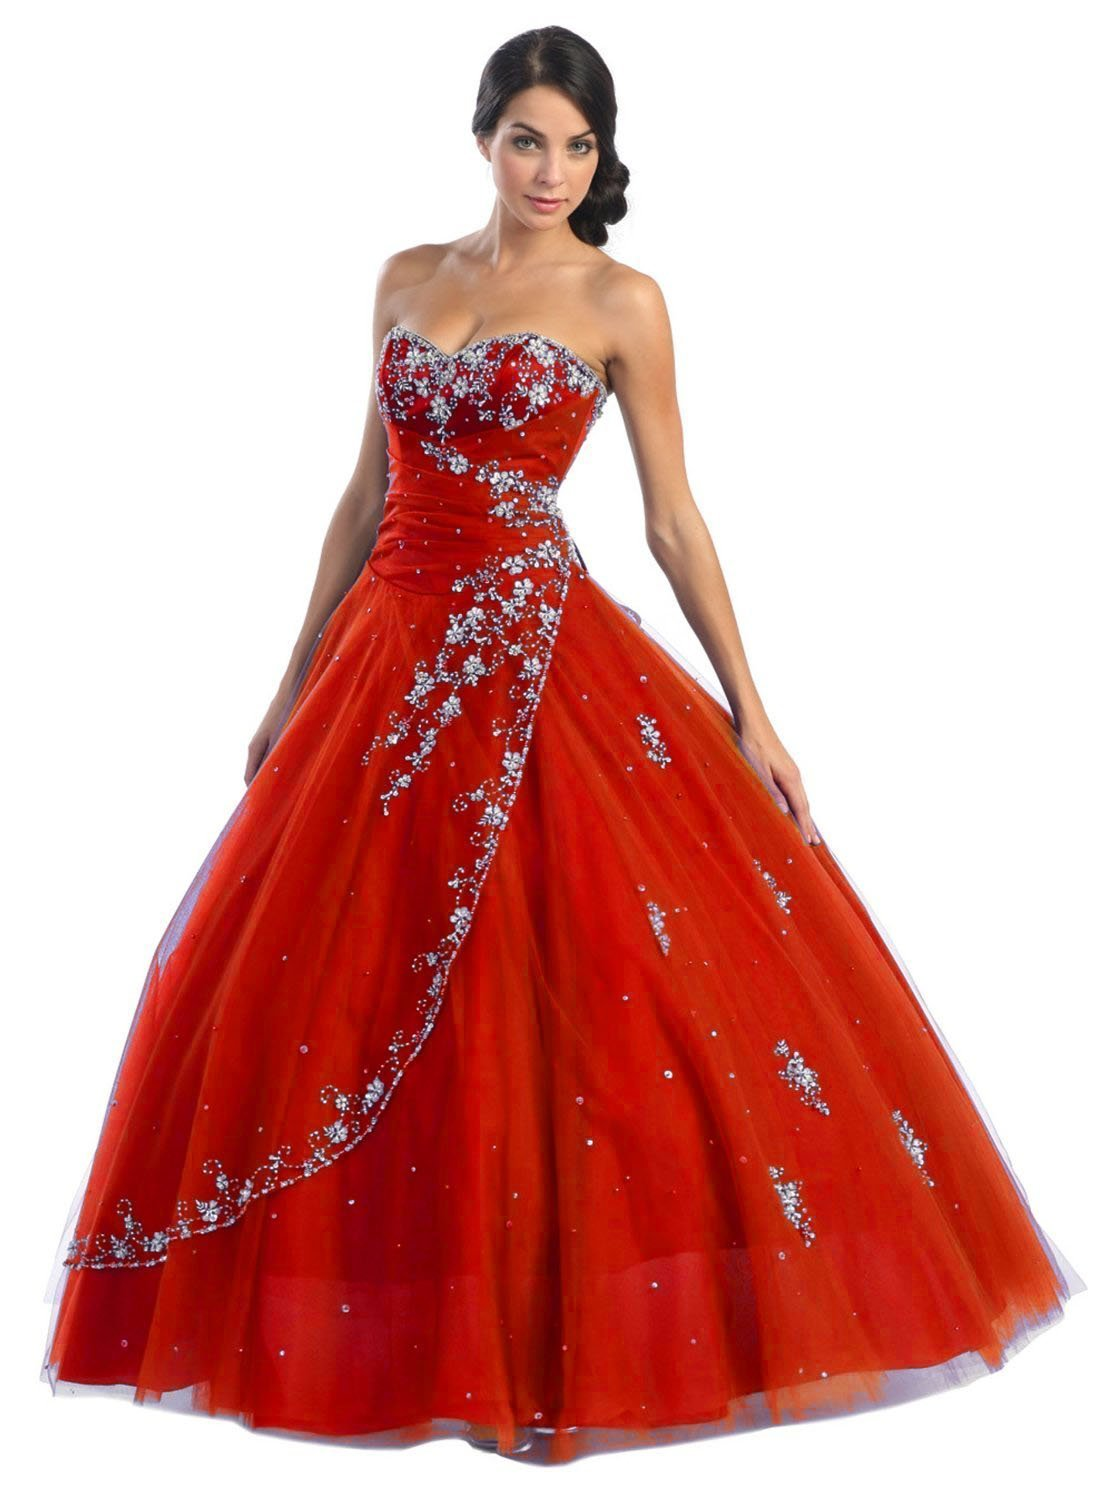 sweetheart neckline red ball gown wedding dress